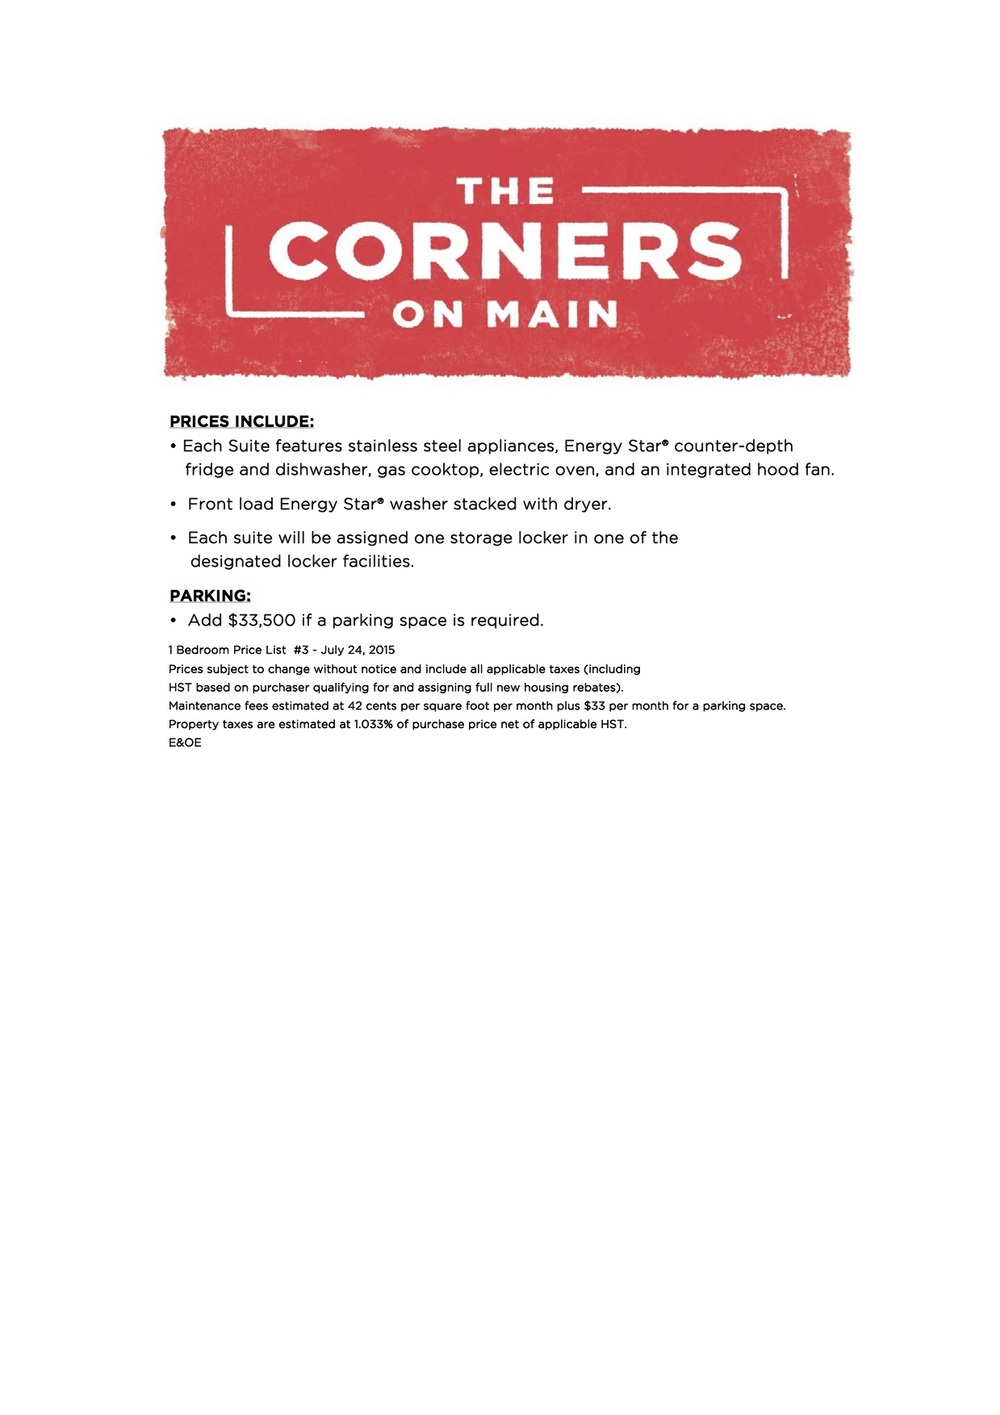 Corners On Main Pricelist_July_24_20153.jpg